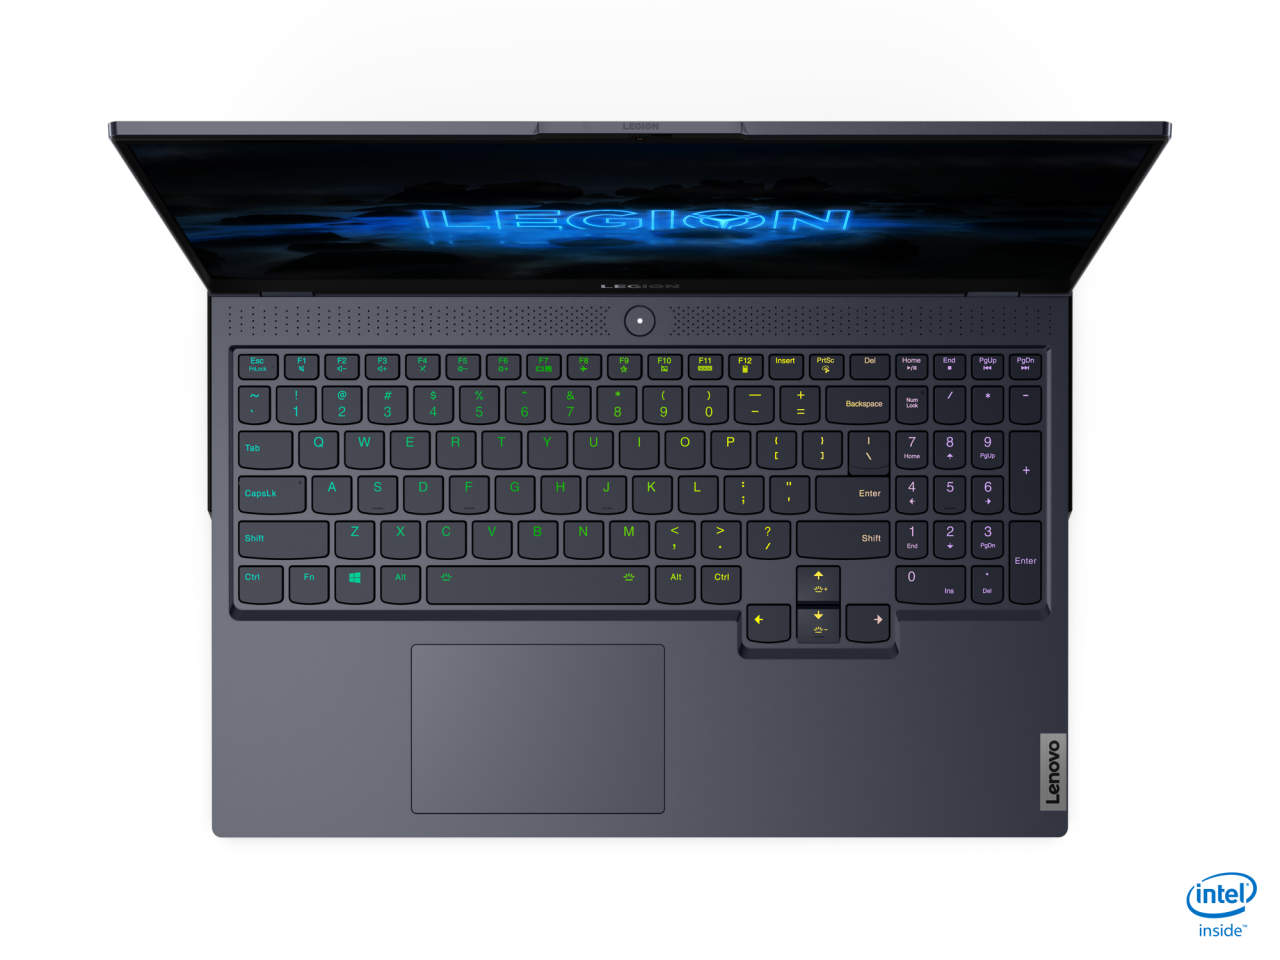 The Legion 7i sports a full-size RGB backlit keyboard and large trackpad